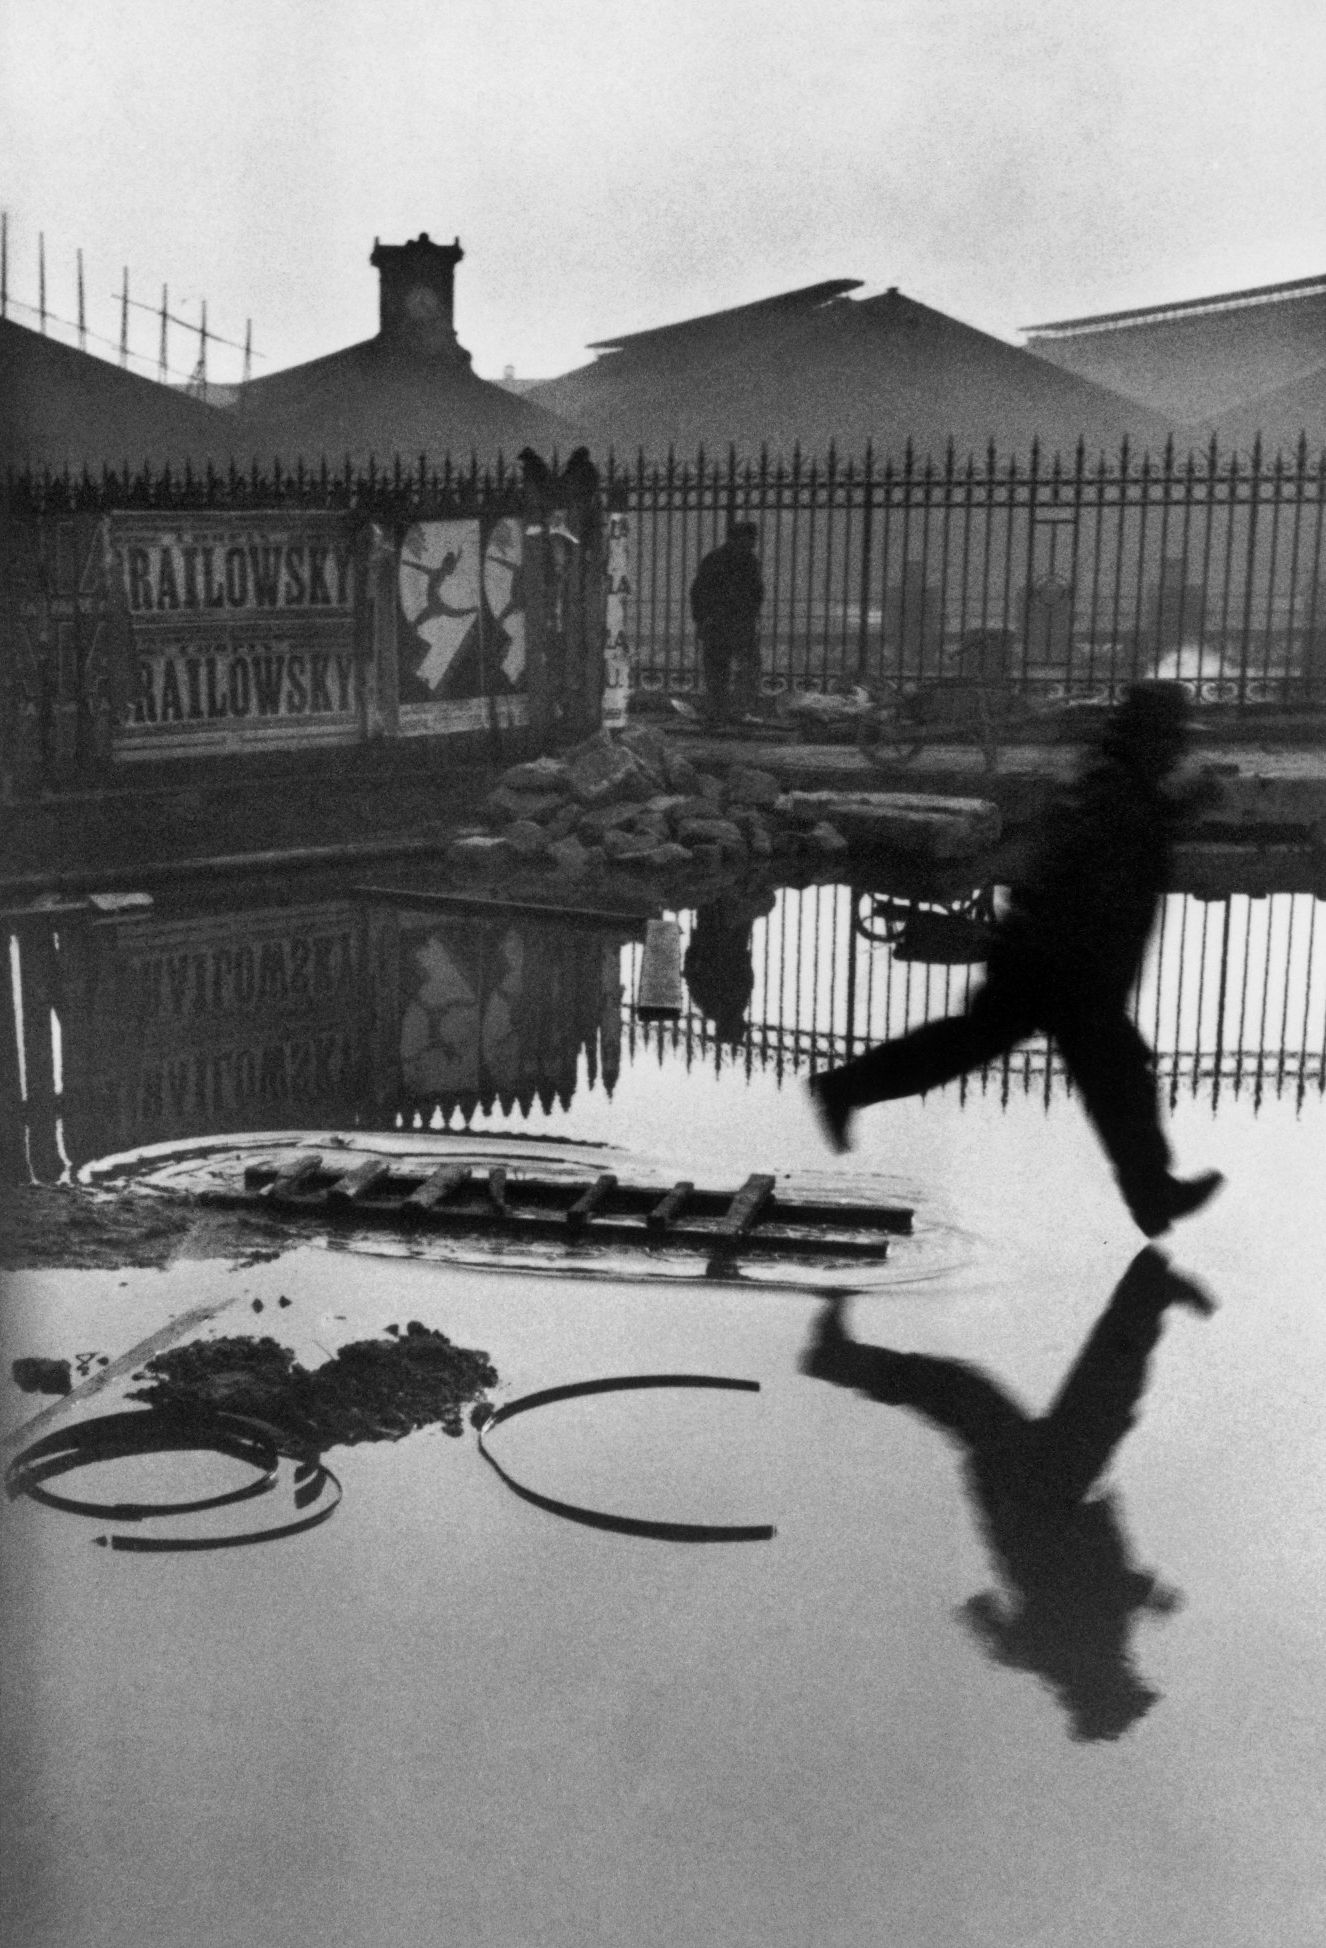 Henri Cartier Bresson - Behind Saint Lazare Train Station - Paris (1932) cult photo magnum press foto iconica agenzia di stampa cult stories cultstories Suggestion Expanded sub-suggestions henri cartier bresson henri cartier bresson photos henri cartier bresson fondation henri cartier bresson biographie henri cartier bresson oeuvre henri cartier bresson bruxelles Henri Cartier Bresson a henri cartier bresson appareil photo henri cartier-bresson amazon henri cartier bresson autoportrait henri cartier bresson alberto giacometti henri cartier bresson analyse photo henri cartier bresson analyse henri cartier bresson au centre pompidou henri cartier bresson assouline henri cartier bresson albert camus henri cartier bresson agence magnum Henri Cartier Bresson b henri cartier bresson biographie henri cartier bresson bruxelles henri cartier bresson biographie courte henri cartier bresson beaubourg henri cartier bresson brasserie lipp henri cartier bresson berlin henri cartier bresson bibliographie henri cartier bresson bali henri cartier bresson blog henri cartier bresson bnf Henri Cartier Bresson c henri cartier bresson clement cheroux henri cartier bresson centre pompidou henri cartier bresson courte biographie henri cartier bresson catalogue henri cartier bresson critique henri cartier bresson courant artistique henri cartier bresson contacts henri cartier-bresson.com henri cartier bresson centre henri cartier bresson camera Henri Cartier Bresson d henri cartier bresson decisive moment henri cartier bresson decisive moment book henri cartier bresson decisive moment quote henri cartier bresson documentary henri cartier bresson decisive moment pdf henri cartier bresson drawings henri cartier bresson downtown new york henri cartier-bresson dvd Henri Cartier Bresson e henri cartier bresson expo bruxelles henri cartier bresson expo henri cartier bresson en mexico henri cartier bresson ebay henri cartier bresson et ses oeuvres henri cartier bresson et giacometti henri cartier bresson en madrid henri cartier bresson equipment henri cartier bresson en brie henri cartier bresson english Henri Cartier Bresson f henri cartier bresson fondation henri cartier bresson femme henri cartier bresson facebook henri cartier bresson film henri cartier bresson famille henri cartier bresson fnac henri cartier bresson front populaire henri cartier bresson photos henri cartier bresson frases henri cartier bresson fotografo Henri Cartier Bresson g henri cartier bresson gare saint lazare henri cartier bresson gallery henri cartier bresson greece henri cartier bresson gandhi henri cartier bresson gear henri cartier bresson geometry henri cartier bresson giacometti henri cartier bresson georges pompidou henri cartier bresson giacometti 1961 henri cartier bresson gestapo Henri Cartier Bresson h henri cartier bresson histoire des arts henri cartier bresson hyeres henri cartier-bresson history henri cartier bresson hayatı henri cartier bresson himself henri cartier bresson historia henri cartier-bresson high resolution henri cartier-bresson how to pronounce fondation henri cartier bresson horaires henri cartier bresson photographe humaniste Henri Cartier Bresson j henri cartier bresson japan henri cartier bresson jean paul sartre henri cartier bresson jean renoir henri cartier bresson japon henri cartier bresson jeune henri cartier bresson jeunesse henri cartier-bresson just plain love henri cartier bresson juvisy henri cartier bresson jean clair henri cartier bresson jump Henri Cartier Bresson k henri cartier-bresson kyoto henri cartier bresson kimdir henri cartier bresson ken rockwell henri cartier bresson karar anı henri cartier bresson karar anı pdf henri cartier-bresson kamera henri cartier bresson kitapları henri cartier bresson kiss henri cartier-bresson książka henri cartier-bresson kaufen Henri Cartier Bresson l henri cartier bresson leica henri cartier bresson livre henri cartier bresson le locle henri cartier bresson le mur de berlin hda henri cartier bresson le mur de berlin Henri Cartier Bresson n henri cartier bresson new york henri cartier bresson newcastle henri cartier bresson new york 1947 henri cartier bresson nord henri cartier bresson nord pas de calais henri cartier bresson nederlands henri cartier bresson nacionalidad henri cartier bresson photography names henri cartier bresson national geographic henri cartier-bresson (new horizons) Henri Cartier Bresson o henri cartier bresson oeuvre henri cartier bresson objectif henri cartier bresson.org henri cartier bresson on martin parr henri cartier bresson on facebook henri cartier bresson open culture henri cartier bresson official site henri cartier bresson on photography henri cartier bresson online gallery henri cartier bresson on the decisive moment Henri Cartier Bresson p henri cartier bresson photos henri cartier bresson pompidou henri cartier bresson paris henri cartier bresson portrait henri cartier bresson paysages henri cartier bresson photo poche henri cartier bresson pompidou livre henri cartier bresson poster Henri Cartier Bresson q henri cartier bresson quotes henri cartier-bresson citation henri cartier bresson quote decisive moment henri cartier bresson question of colour henri cartier-bresson quotes the decisive moment henri cartier bresson quotes on street photography henri cartier-bresson quotes in french henri cartier bresson quotes 10 000 henri cartier bresson quotes sharpness henri cartier bresson quotes leica Henri Cartier Bresson r henri cartier bresson rue mouffetard henri cartier bresson retrospective henri cartier bresson ramana maharshi henri cartier bresson reportage henri cartier bresson robert capa henri cartier bresson roumanie henri cartier bresson robert doisneau henri cartier-bresson ratna mohini henri cartier bresson rome henri cartier bresson russie Henri Cartier Bresson s henri cartier bresson style henri cartier bresson street photography henri cartier bresson self portrait henri cartier bresson spiral staircase henri cartier bresson staircase henri cartier bresson seville henri cartier bresson scrapbook henri cartier bresson soviet union henri cartier bresson shanghai 1949 henri cartier bresson shutter speed Henri Cartier Bresson t henri cartier bresson tour eiffel henri cartier bresson tumblr henri cartier bresson technique henri cartier bresson tete a tete henri cartier bresson taschen henri cartier bresson truman capote henri cartier bresson the var department henri cartier-bresson the decisive moment pdf henri cartier bresson the decisive moment book henri cartier bresson the decisive moment quote Henri Cartier Bresson u henri cartier bresson umbrella henri cartier bresson urss henri cartier bresson usa new york city manhattan downtown 1947 henri cartier bresson urban photography Henri Cartier Bresson v henri cartier bresson video henri cartier bresson velodrome henri cartier bresson vive la france henri cartier bresson valencia henri cartier bresson voyage henri cartier bresson vilaine mouche henri cartier bresson vie henri cartier bresson valence 1933 henri cartier bresson valence henri cartier bresson vimeo Henri Cartier Bresson w henri cartier bresson wiki henri cartier bresson wallpaper henri cartier bresson wiki fr henri cartier bresson washington henri cartier bresson west germany henri cartier bresson walker evans photographing america henri cartier bresson which leica henri cartier bresson work henri cartier bresson wife henri cartier bresson what camera Henri Cartier Bresson y henri cartier bresson your first 10000 henri cartier bresson youtube youtube henri cartier bresson henri cartier bresson your first henri cartier-bresson y el momento decisivo henri cartier bresson young Henri Cartier Bresson z henri cartier-bresson zitate henri cartier-bresson zdjęcia cult stories cultstories cinema cult story cultstory art culture music ipse dixit aneddoti citazioni frasi famose aforismi immagini foto personaggi cultura musica storie facts fatti celebrità vip cult spettacoli live performance concerto photo photography celebrity giornalismo scrittura libri genio pop icon attore cantante solista pittrice scultore attrice star diva sex symbol